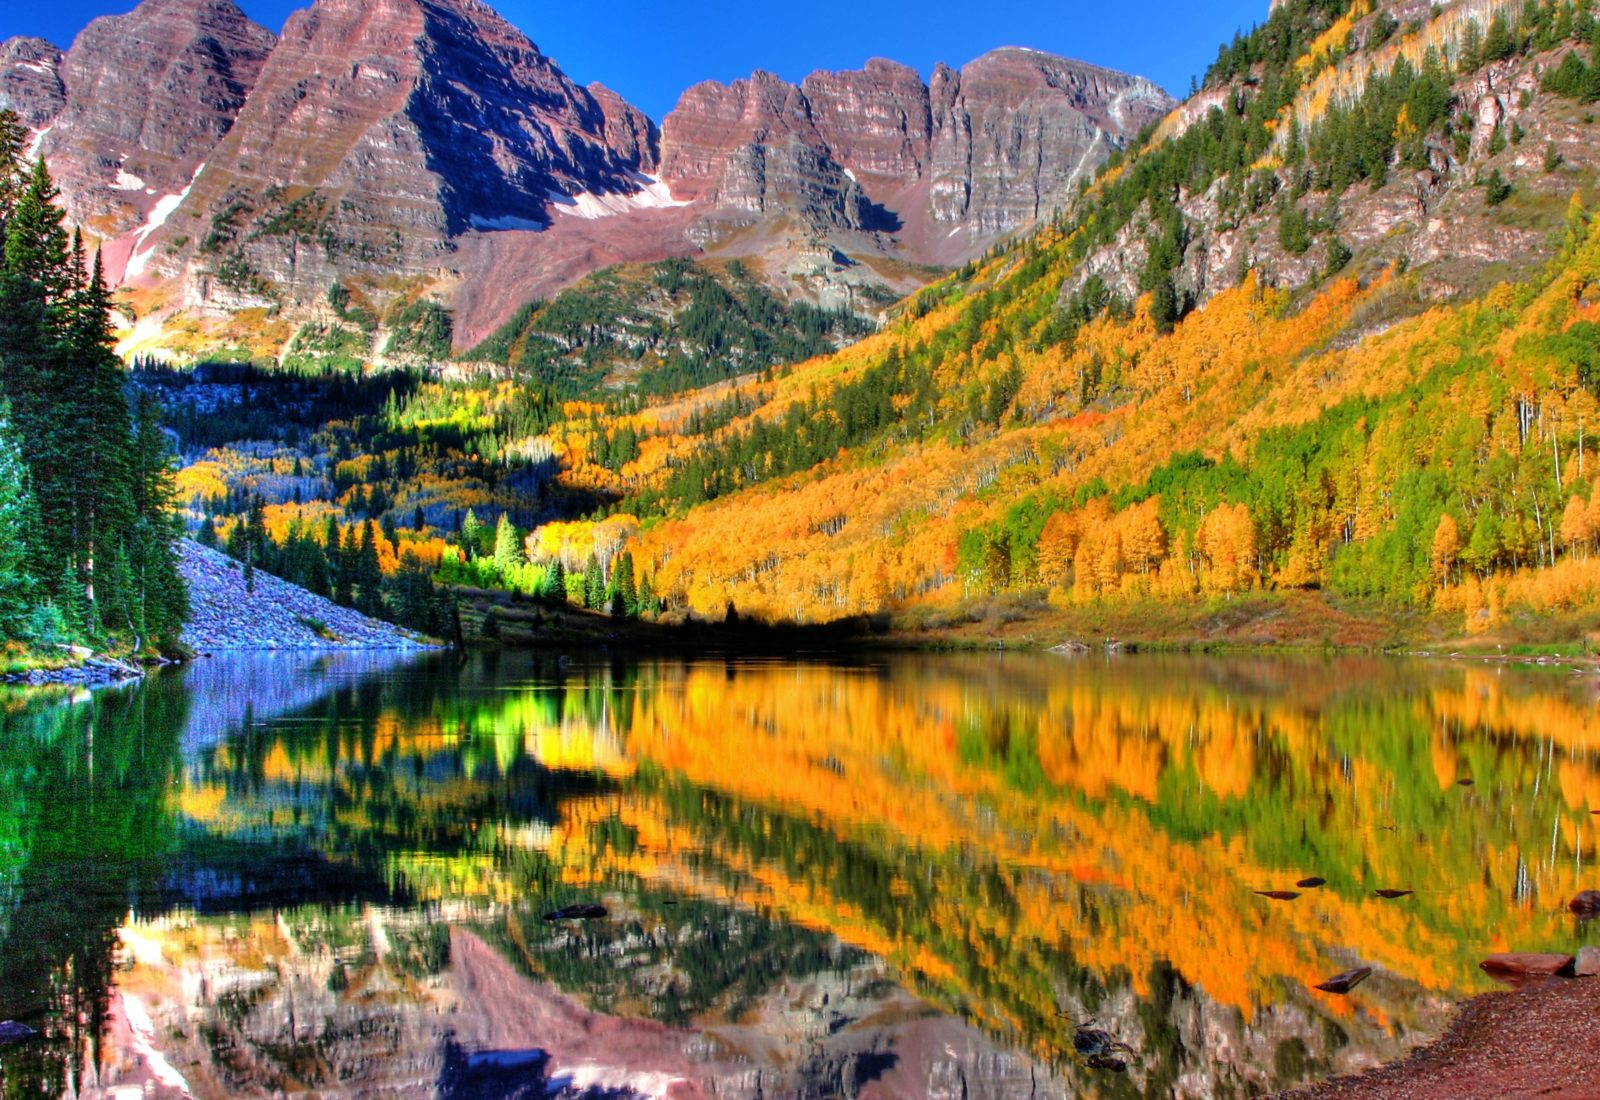 Fall colors of Maroon Bells